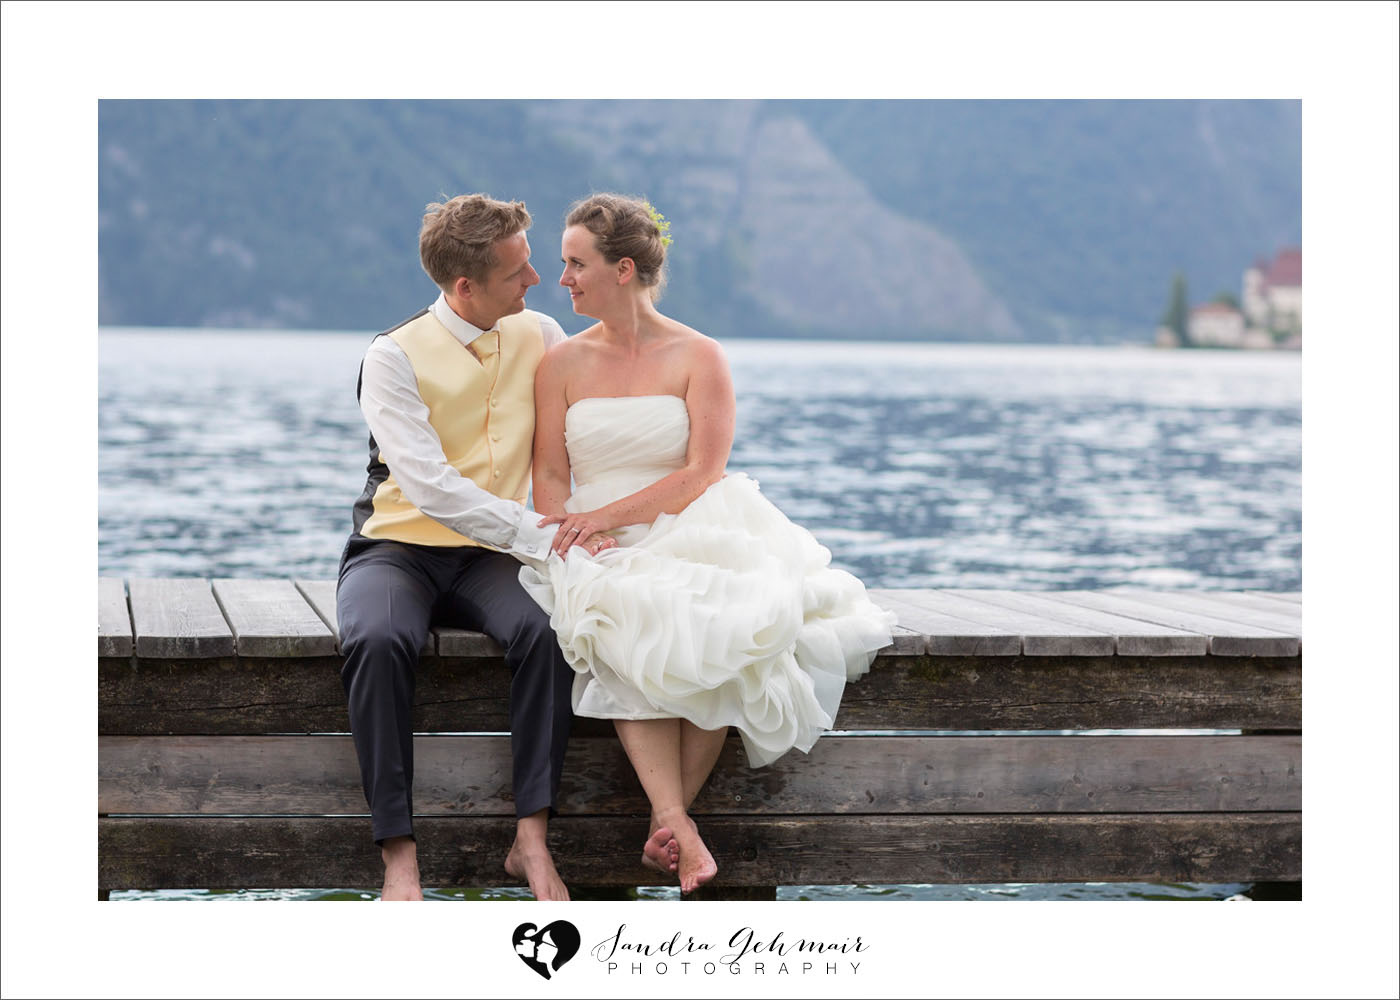 050_heiraten_am_see_spitzvilla_sandra_gehmair